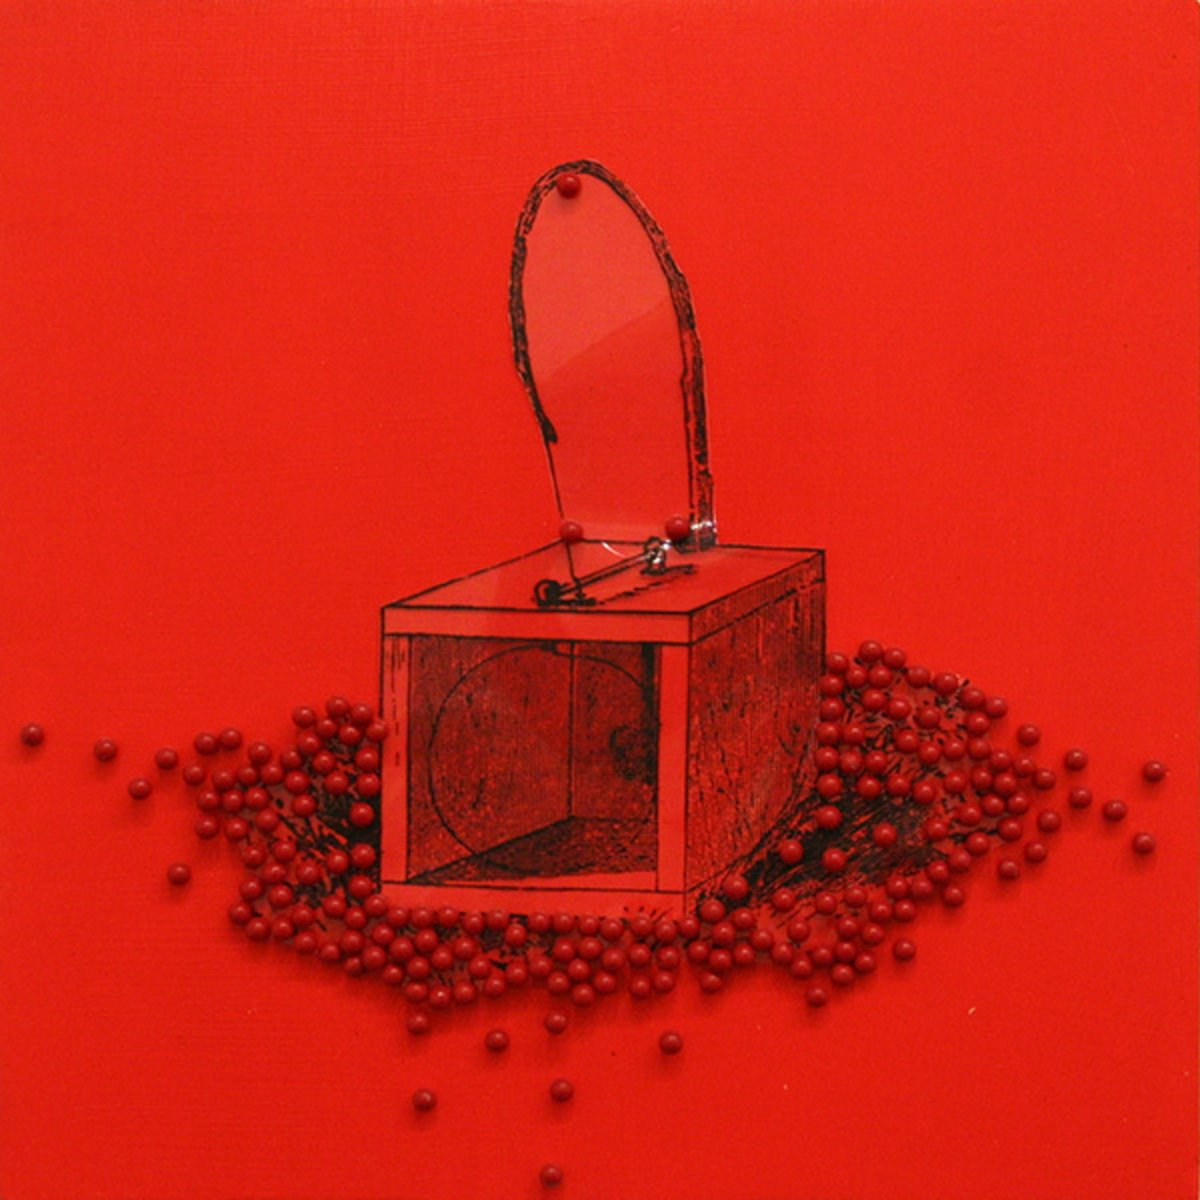 James Cullinane, Trap Painting 3, 2012